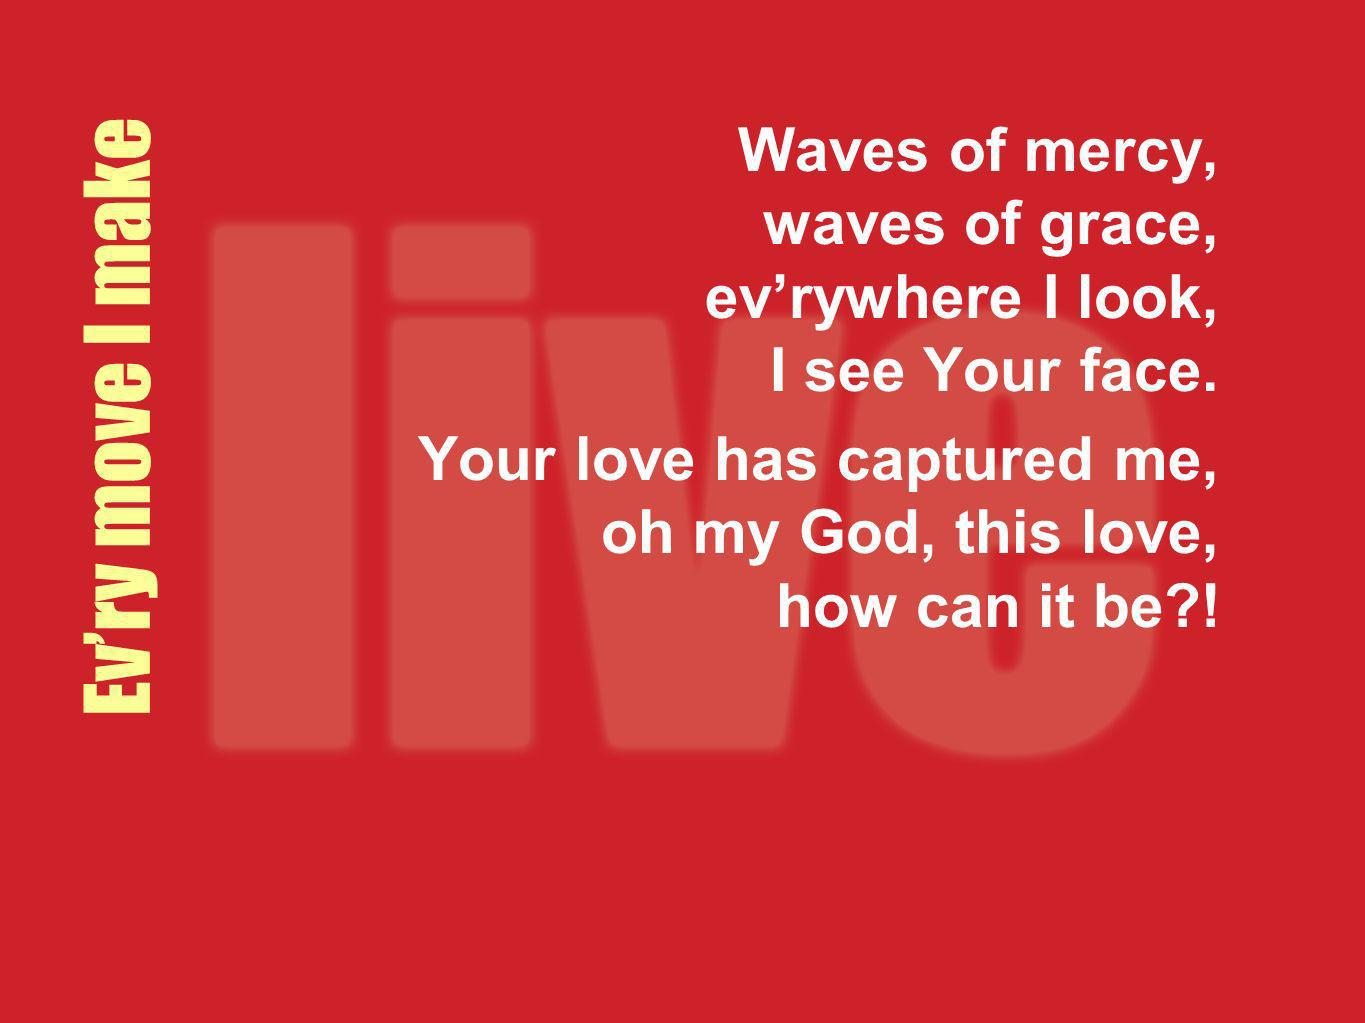 Evry move I make Waves of mercy, waves of grace, evrywhere I look, I see Your face. Your love has captured me, oh my God, this love, how can it be?!